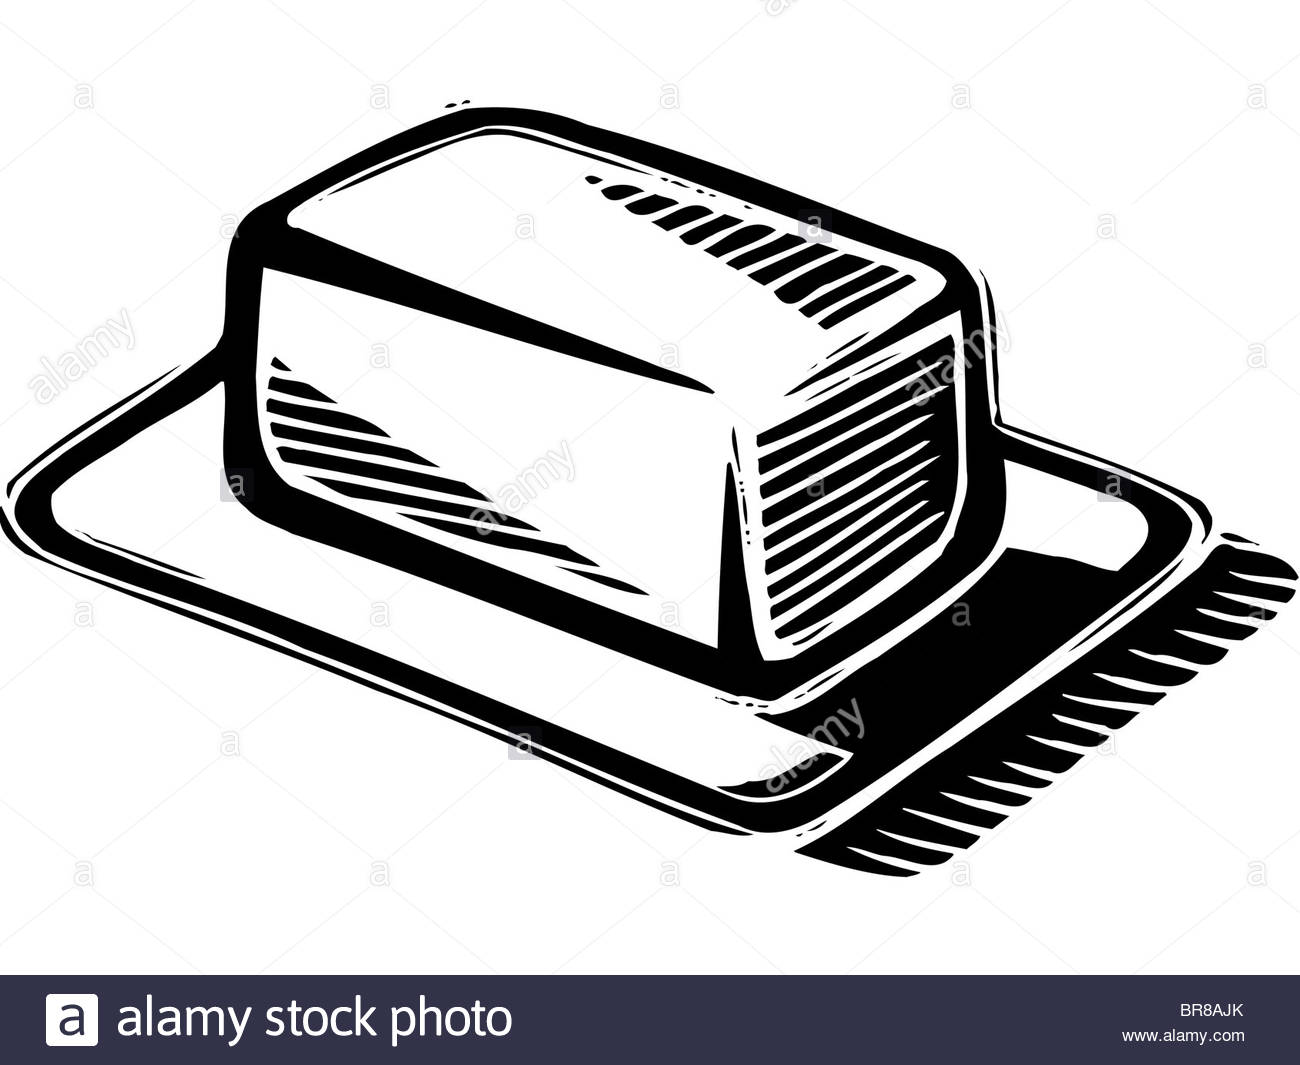 An illustration of a block of Butter in black and white Stock Photo.